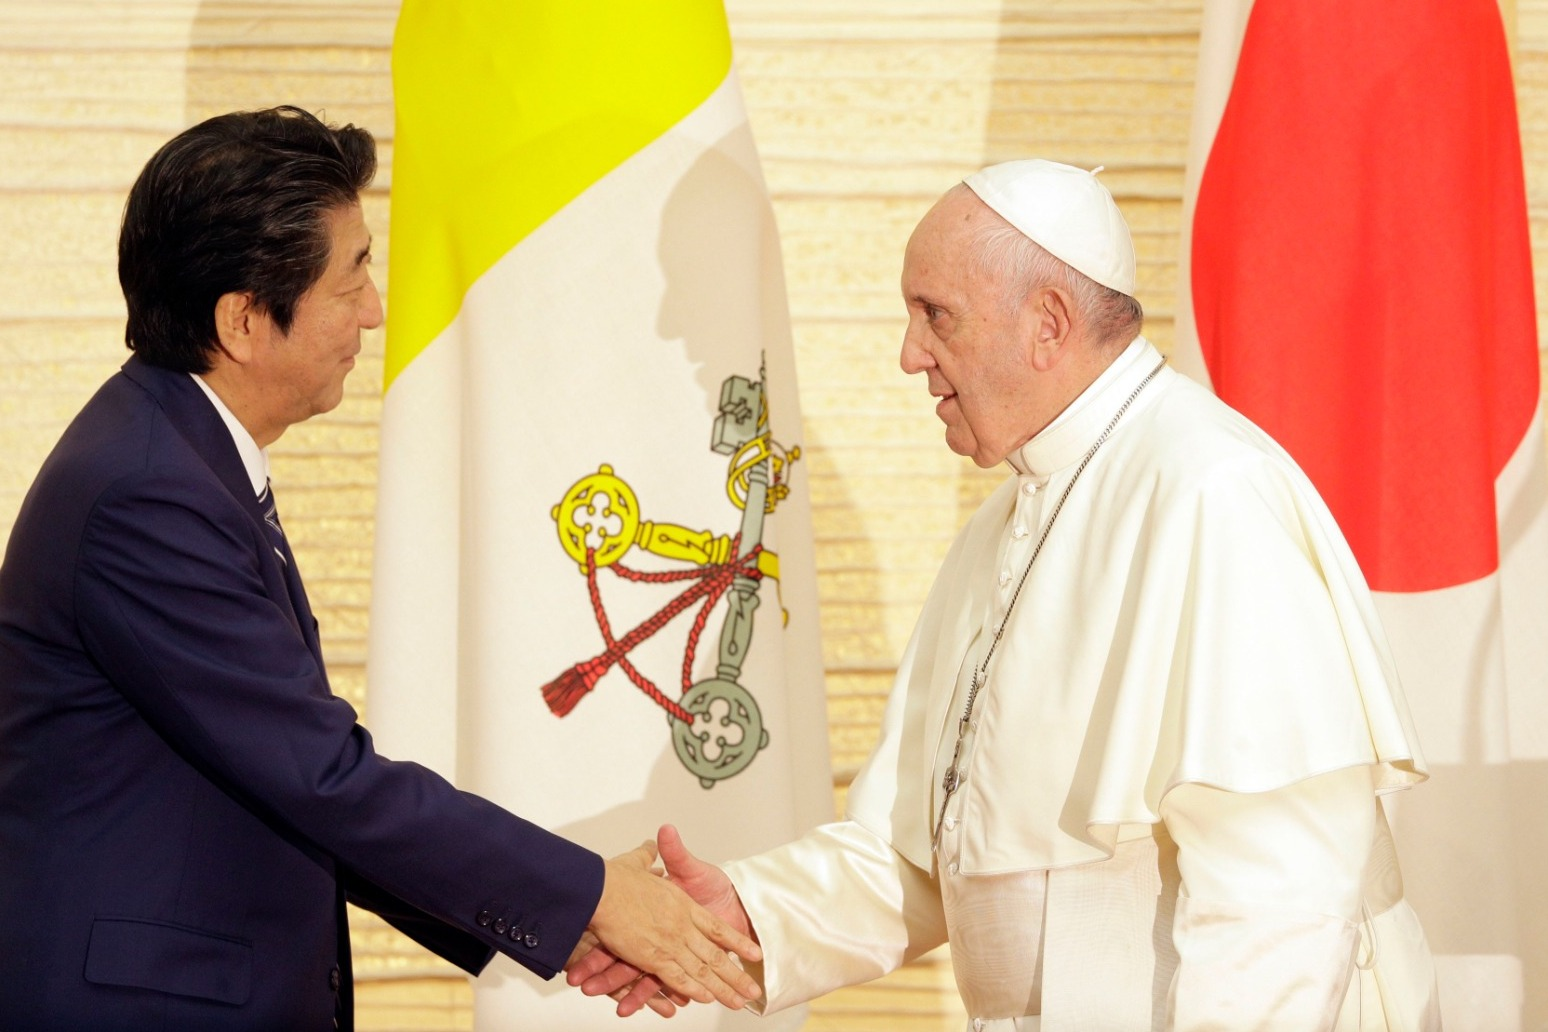 POPE FRANCIS LEARNS OF EFFECTS OF JAPAN\'S FUKUSHIMA NUCLEAR PLANT DISASTER